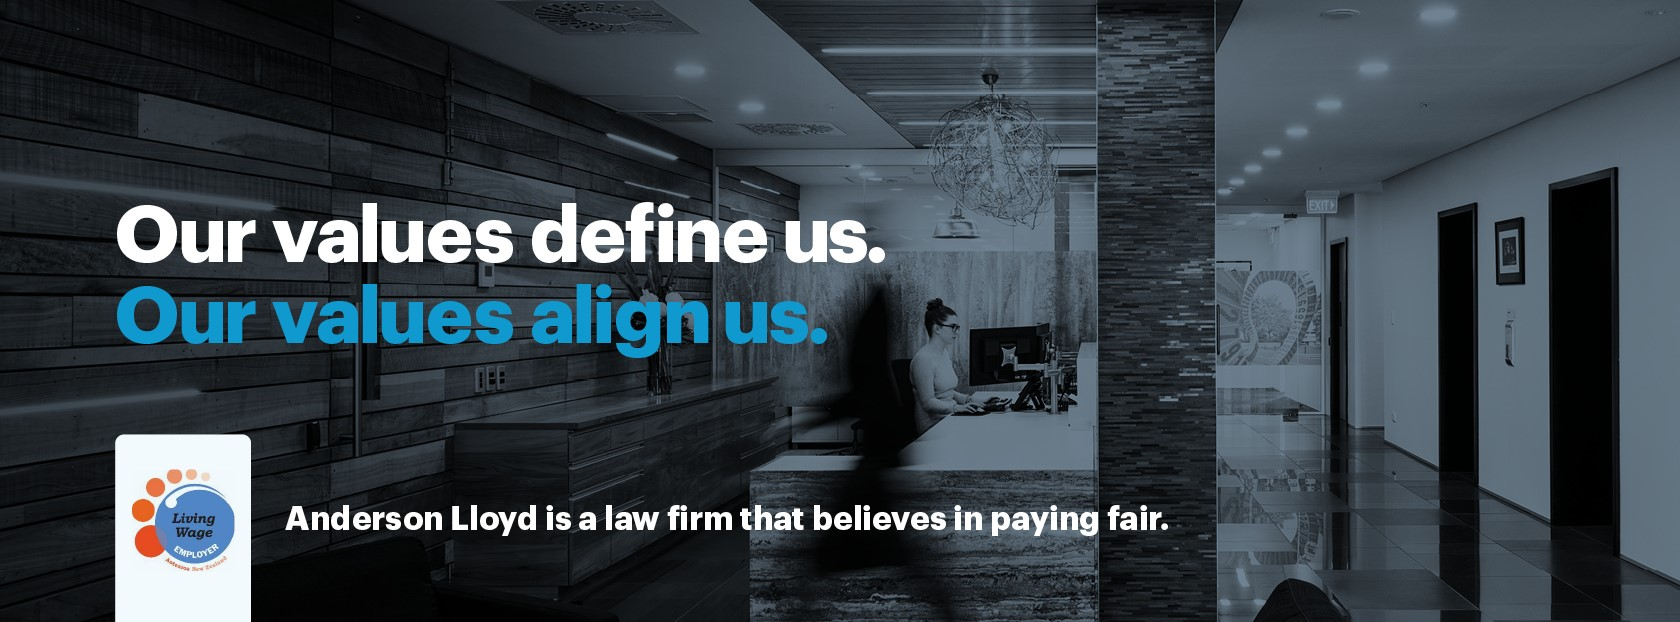 Anderson Lloyd is a law firm that believes in paying fair